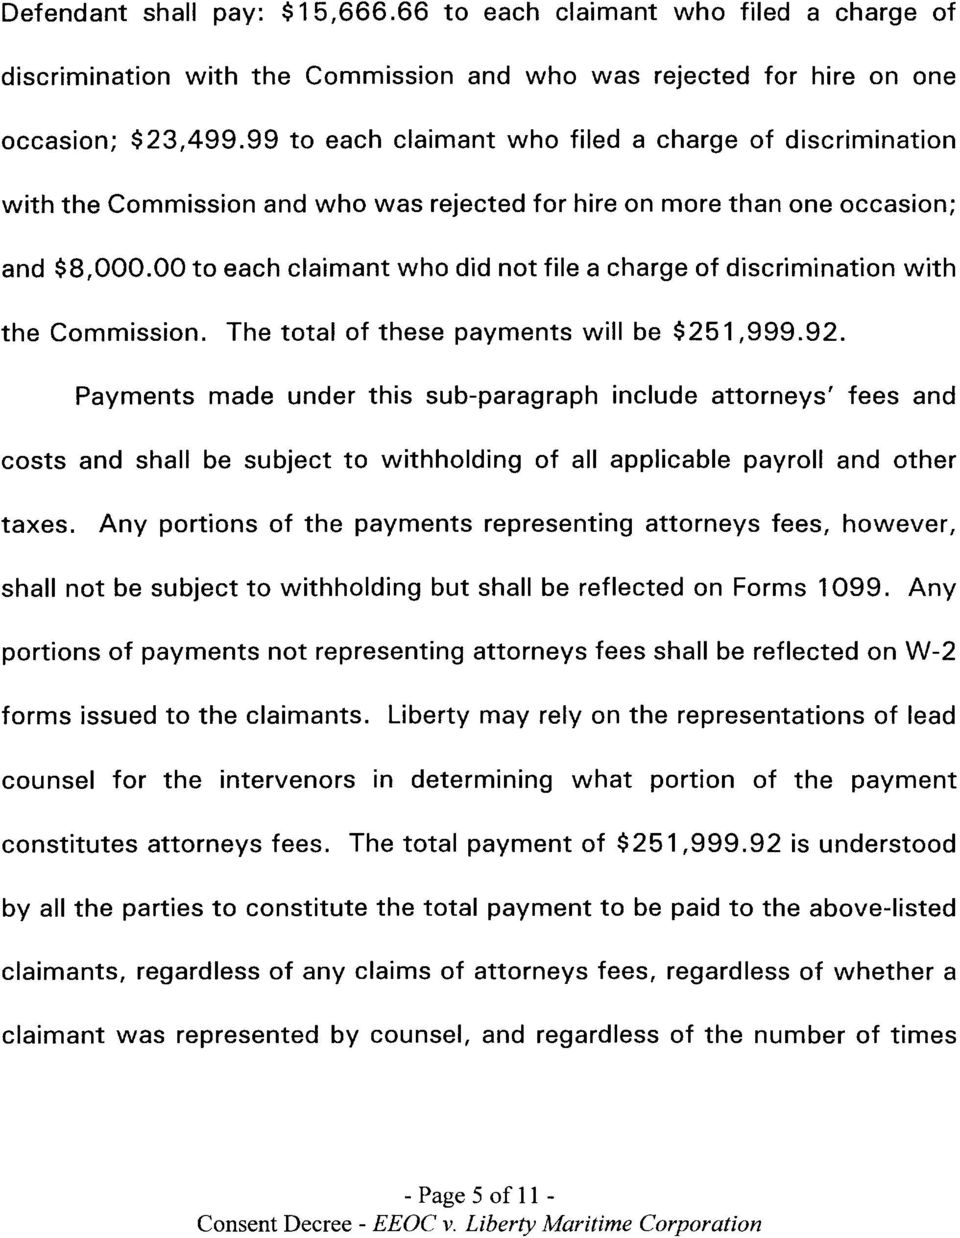 00 to each claimant who did not file a charge of discrimination with the Commission. The total of these payments will be $251,999.92.